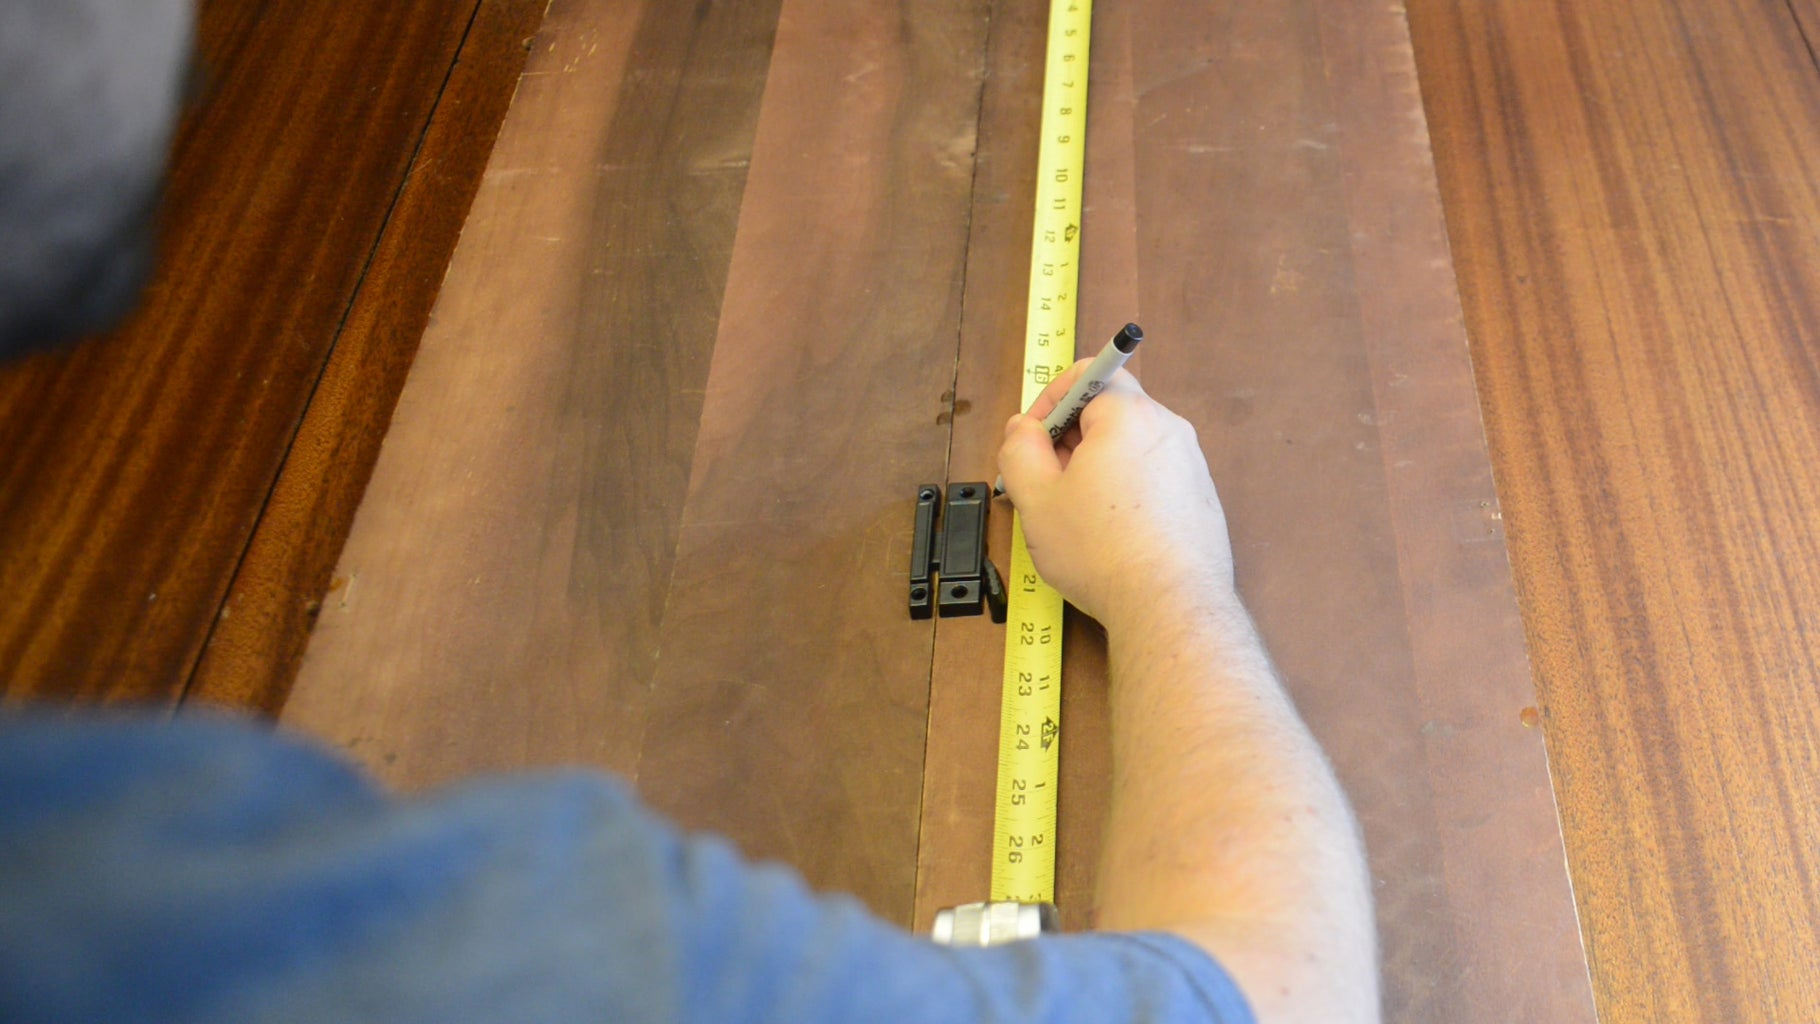 Mark, Drill, and Measure Some Holes.